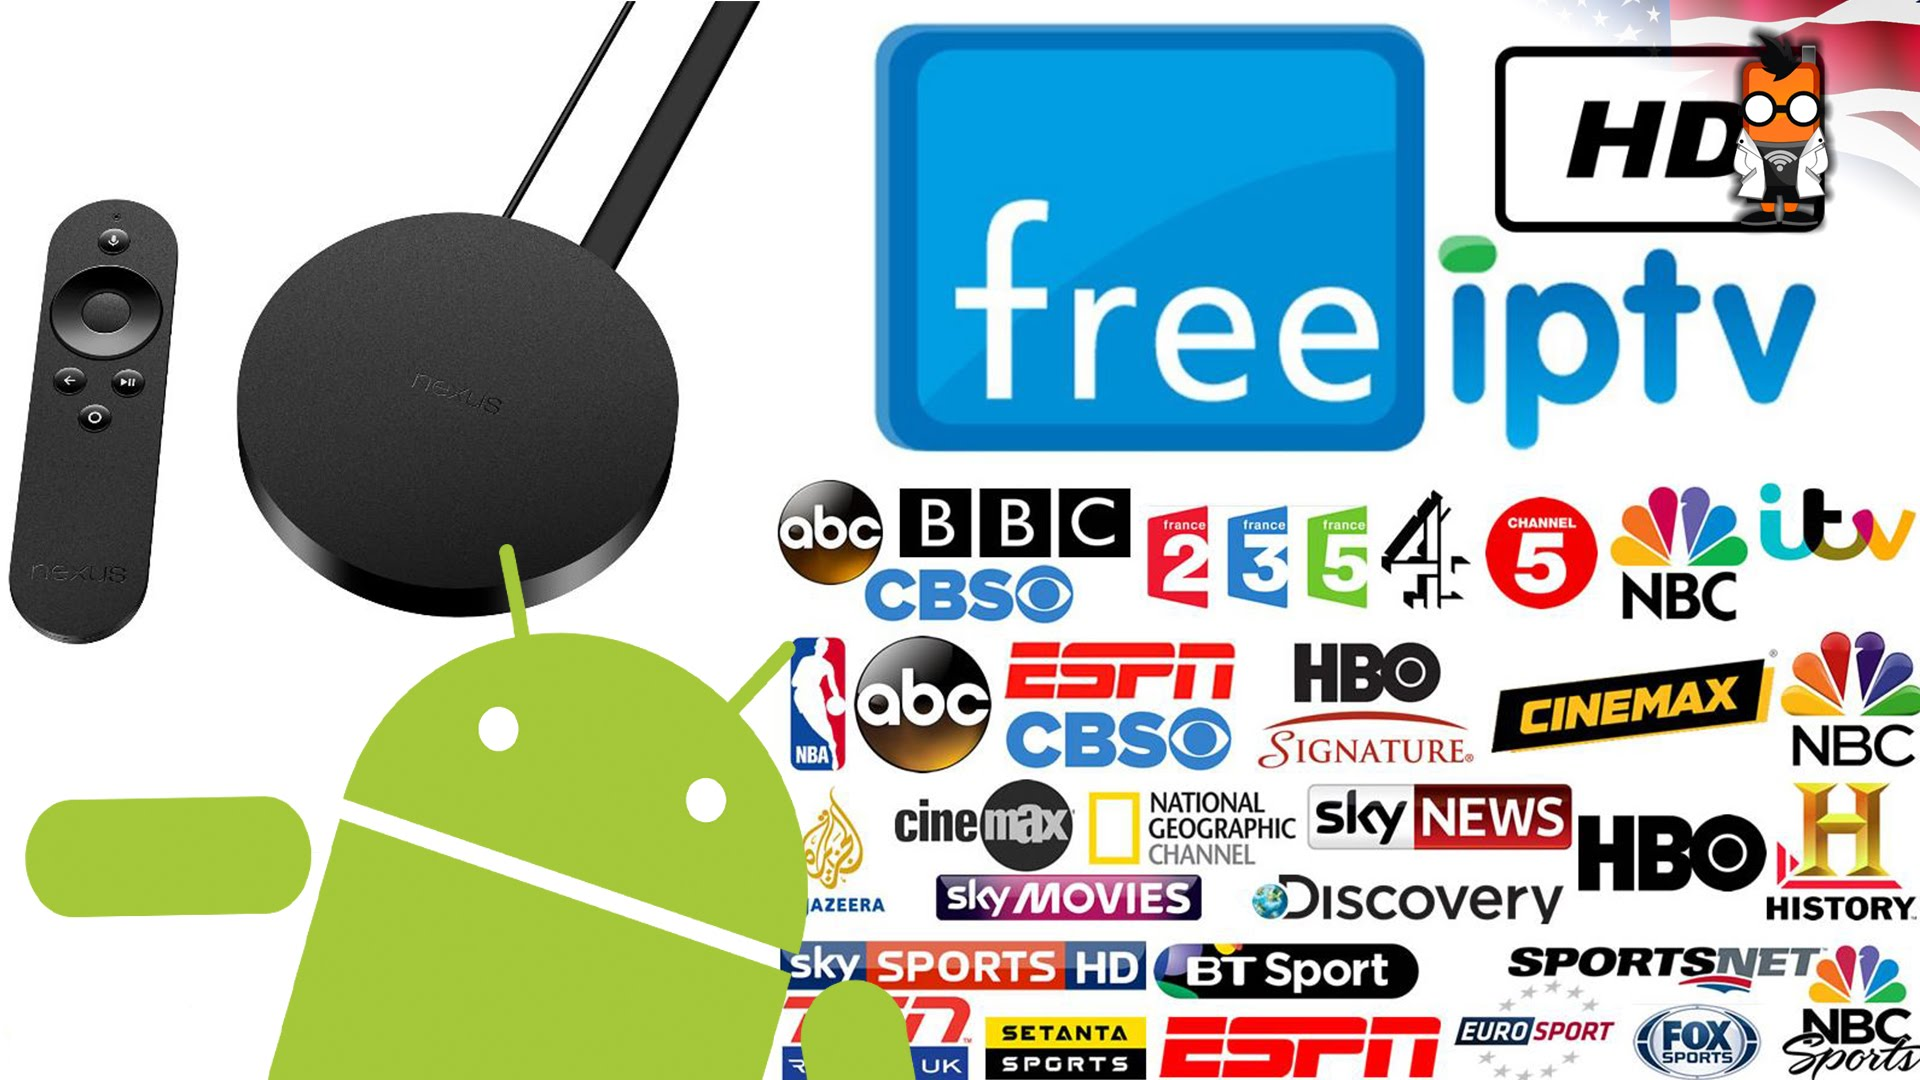 iptv android box iptv android tv iptv android apk iptv android url iptv android tv box iptv android phone iptv android box apk iptv android m3u iptv android apps iptv android links iptv android iptv android app iptv android apk 2018 iptv android apps free iptv android apk 2017 iptv android app best iptv android apk m3u iptv android app 2017 iptv android app open source iptv android app m3u agregar canales a iptv android como agregar canales a iptv android mise a jour iptv android como añadir canales a iptv android añadir canales a iptv android iptv android box free iptv android box canada iptv android box app iptv android box username and password iptv android box download iptv android best app iptv android box 2018 iptv android blogspot iptv android channel list iptv android channels iptv android canada iptv android chromecast iptv android can't play this link iptv android client iptv android channel url iptv android canales iptv android come funziona iptv android canalsat iptv android download iptv android device iptv android deutsch iptv android dlna iptv android descargar iptv android decoder iptv android dreambox iptv dongle android android iptv development android iptv dvb s.all_and d.iptv android code d'activation iptv android iptv android epg iptv android emulator iptv android ebay iptv android españa iptv android español ex yu iptv for android iptv android ex yu iptv android epg url iptv android eurosport iptv android example iptv e mag android iptv e android iptv e-mag per android iptv android free iptv android free trial iptv android free download iptv android forum iptv android facebook iptv android firmware iptv android files iptv for android iptv for android box iptv for android tv iptv android github iptv android guide iptv android google play iptv android gratuit iptv android gratis iptv android guida iptv android güncel kanal listesi iptv android güncel kanal listesi 2015 iptv android globo android iptv greek g-iptv android g box android iptv box g-box midnight android iptv box g-box *midnight* android iptv box review telecharger g-iptv android g-iptv and vod for android g-iptv android 2015 g-iptv android apk iptv android hack iptv android himedia q3 iptv android how to iptv android help iptv android how to use iptv android hilfe iptv android htcmania iptv android hvga iptv android http iptv android hdmi iptv android install iptv android italia iptv android izleme iptv android icin iptv android instalar iptv android imagenio iptv in android android iptv indian channels android iptv indian iptv in android tablet iptv android japan android iptv japanese iptv for android jelly bean android iptv box jimat joy iptv android lista iptv android julho 2015 japan iptv android apk jual iptv android iptv android junho 2015 iptv android junio 2015 iptv android kanal listesi iptv android kanal listesi 2015 iptv android kanali iptv android kanal listesi 2016 iptv android kostenlos iptv android kako iptv android kanal ekleme iptv android kodovi android iptv kanal listesi 2014 android iptv kurulumu iptv android latino iptv android live channels iptv android list iptv android lool iptv android lag iptv android lowyat iptv android linux iptv android link malaysia iptv android lista atualizada iptv android malaysia iptv android mobile iptv android mx player iptv android m8 iptv android m3u8 iptv android media player iptv android malaysia url iptv android m3u playlist 2016 iptv android mac address m-iptv android iptv android not working iptv android netup iptv android nilesat iptv android ne radi nilesat for iptv android iptv no android.rar iptv nfps android iptv stalker android not working iptv shqip ne android new iptv android iptv android open source iptv on android iptv on android box iptv on android phone iptv on android tablet iptv on android tv iptv over android iptv on android box 2016 iptv on android box 2015 iptv on android free o-iptv android app como usar o iptv android o que é iptv android o iptv android 4.0 como funciona o iptv android o melhor iptv para android como funciona o iptv android 4.0 baixar o iptv para android como configurar o iptv android iptv android playlist iptv android player iptv android portugal iptv android premium iptv android problem iptv android password iptv android playlist m3u 2015 iptv android program iptv android play store iptv para android android.q7 tv iptv android quad core iptv android box quad core iptv box android quad-core (smart tv) iptv box android quad core xbmc hybrid q iptv/android box iptv android reddit iptv android recording iptv android rom iptv android receiver iptv android romania android iptv remote control iptv russian android android iptv review iptv rocket android iptv android subscription iptv android setup iptv android source code iptv android sky iptv android smart tv box iptv android smart tv iptv android set top box iptv android server iptv android software iptv android setting ss iptv android ss iptv android apk ss iptv android box ss iptv android download ss iptv para android descargar ss iptv android ss iptv per android ss iptv cloud bridge android iptv android tv apk iptv android tv app iptv android tablet iptv android trial iptv android tv live channels iptv android terbaik iptv android tv3 iptv android tutorial android tv iptv box t-home iptv android iptv android url playlist iptv android url list iptv android url malaysia iptv android update iptv android usa iptv android url list 2015 iptv android url m3u iptv android url 2015 iptv android udp proxy iptv android vs linux iptv android v1 0 iptv android vlc iptv android v2.0 iptv android vpn iptv vs android box android iptv video player iptv viewer android voodoo iptv android iptv via android android tv iptv iptv v androidu iptv android wondershare iptv android wifi iptv android wikipedia iptv with android how android iptv works iptv box with android android iptv box with xbmc android iptv box wiki watch iptv android iptv android xbmc iptv android xda iptv android xspf iptv android xtreamcodes android iptv xml file iptv xbmc android download iptv xbmc android 2015 iptv xbmc android app android iptv box xbmc iptv addon xbmc android iptv x android lista canali iptv x android lista iptv x android iptv android youtube iptv yf android iptv android m3u playlist ex yu iptv android yahoo iptv android m3u ex yu iptv mag y android iptv android nasil yüklenir android iptv ye kanal ekleme android iptv yukleme iptv android zip iptv stalker android zip iptv simple client android zip iptv adrese za android iptv za android iptv aplikacija za android iptv lista za android iptv liste za android iptv linkovi za android iptv kanali za android android iptv sm-001 0-iptv android iptv android 18+ link iptv 18+ android ru.iptv remote.android.iptv-1.apk iptv m3u 18+ android 1und1 iptv android iptv click 1.6.2 android 1 malaysia iptv android iptv android 2018 iptv android 2017 iptv android 2015 iptv android 2016 iptv android 2.3 iptv android 2.2 iptv android 2015 lista iptv android app 2016 url iptv android 2015 iptv android 3.2 3bb iptv android htv box iptv 3 android 4.4.2 nazabox gold android iptv 3d cabo iptv android 4.4 iptv android 4k player iptv android 4pda iptv android 4.2.2 iptv android 4.4 tv box iptv android 4.0 como funciona iptv box android 4.0 i9 iptv android 4.4 rk3288 android 4 iptv box iptv android 5.0 iptv box android 5.1 iptv android 5.1 android 5.1.1 iptv decoder iptv android 5.1 canal 5 iptv android iptv android 5 iptv android 600 iptv android 6.0 iptv66 android emulator iptv box android+640 canales en vivo gratis iptv android 660 iptv android 6